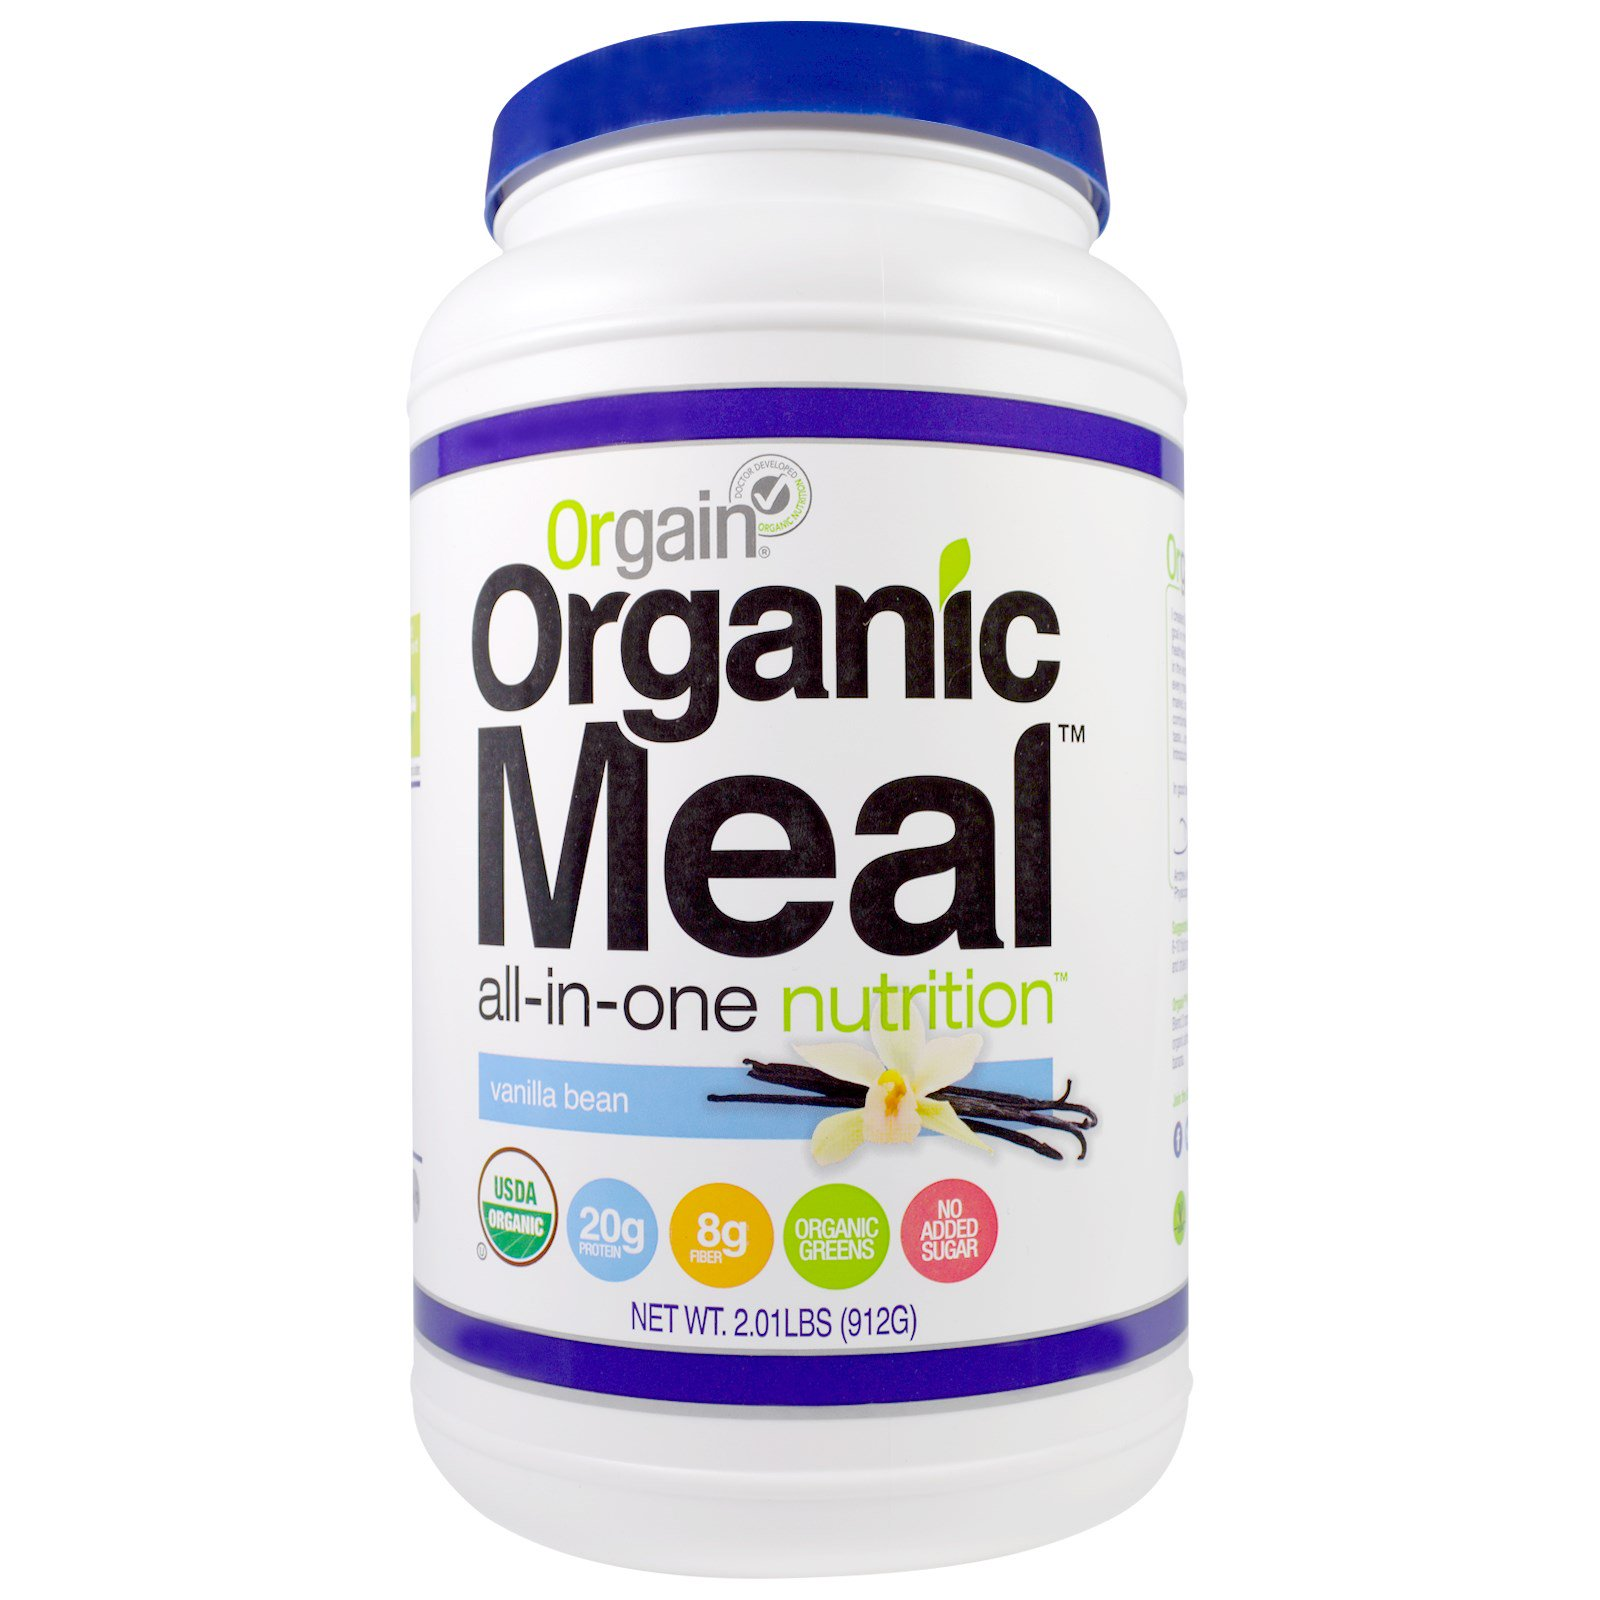 Orgain, Organic Meal, All-In-One Nutrition, Vanilla Bean, 2.01 lbs(pack of 1)